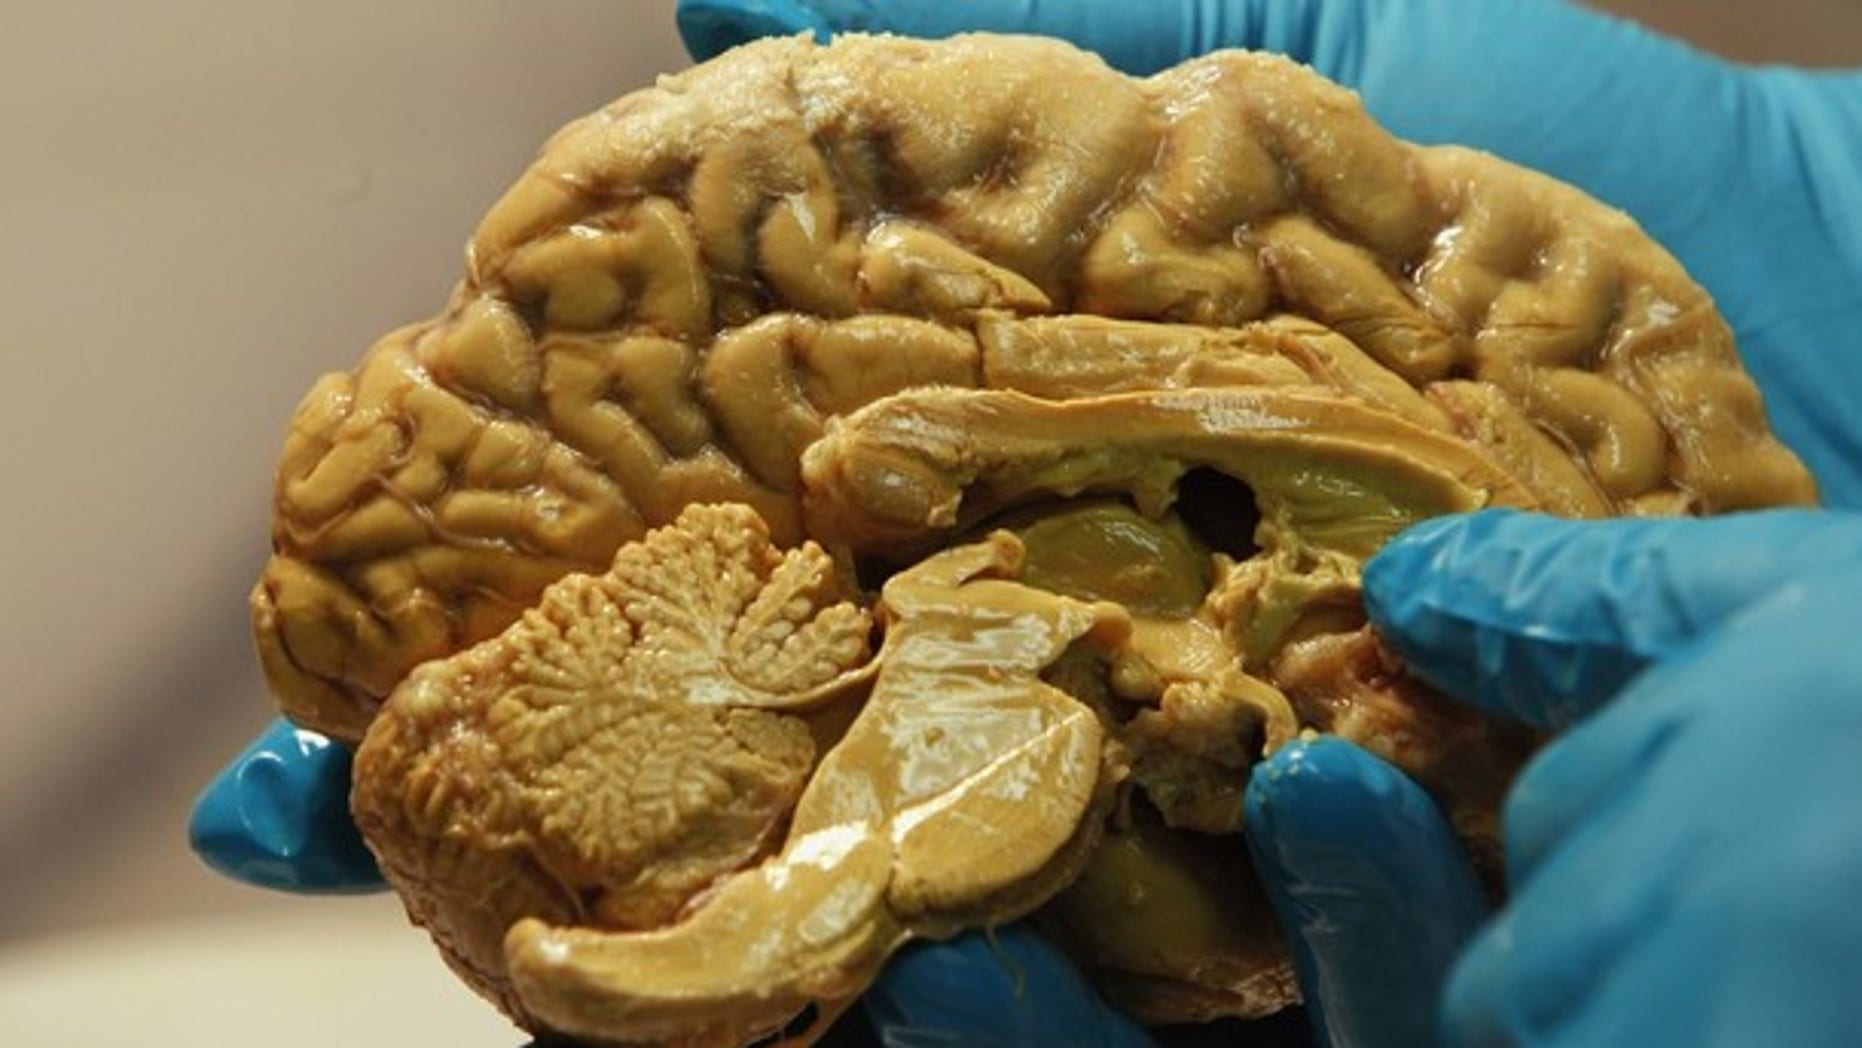 March 16, 2011: Hungarian scientist Tamas Freund holds a human brain at the Institute of Experimental Medicine of Hungarian Academy of Science in Budapest.